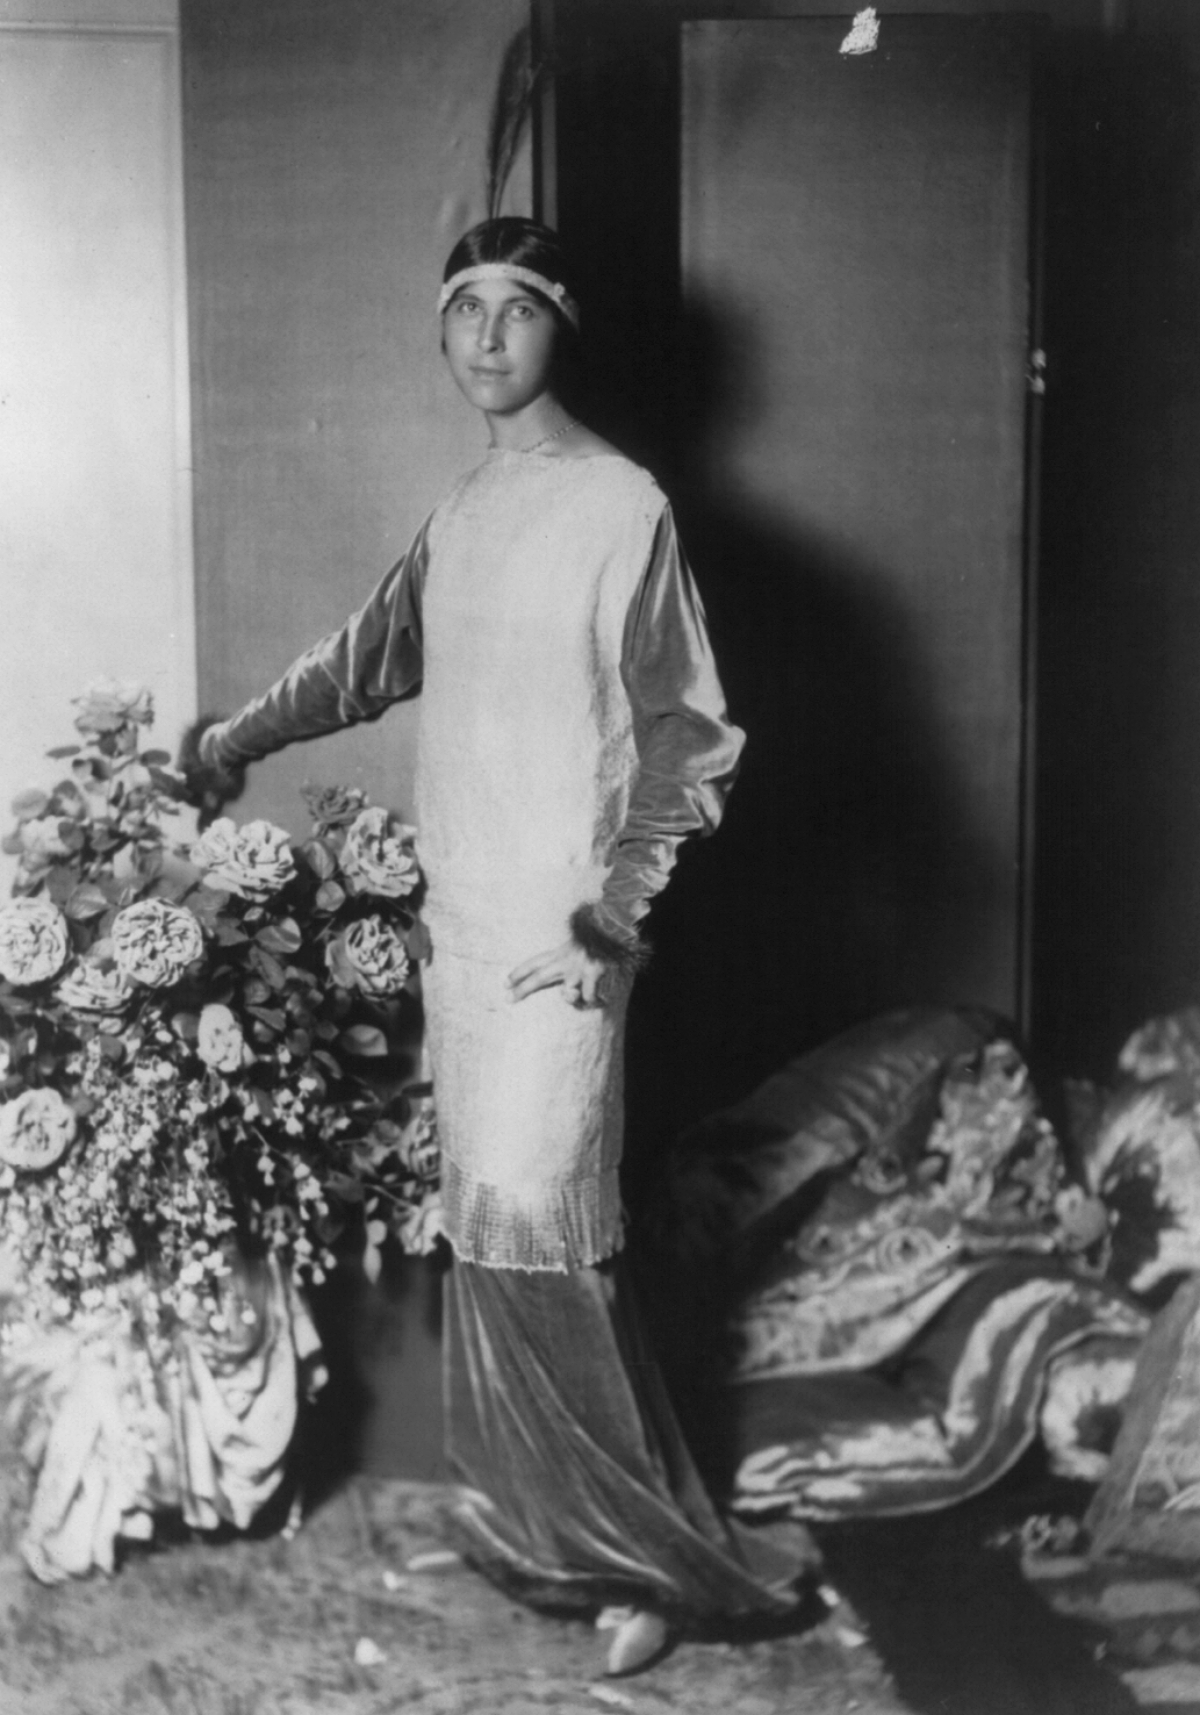 Denise Boulet wife of Paul Poiret wearing one of his gowns